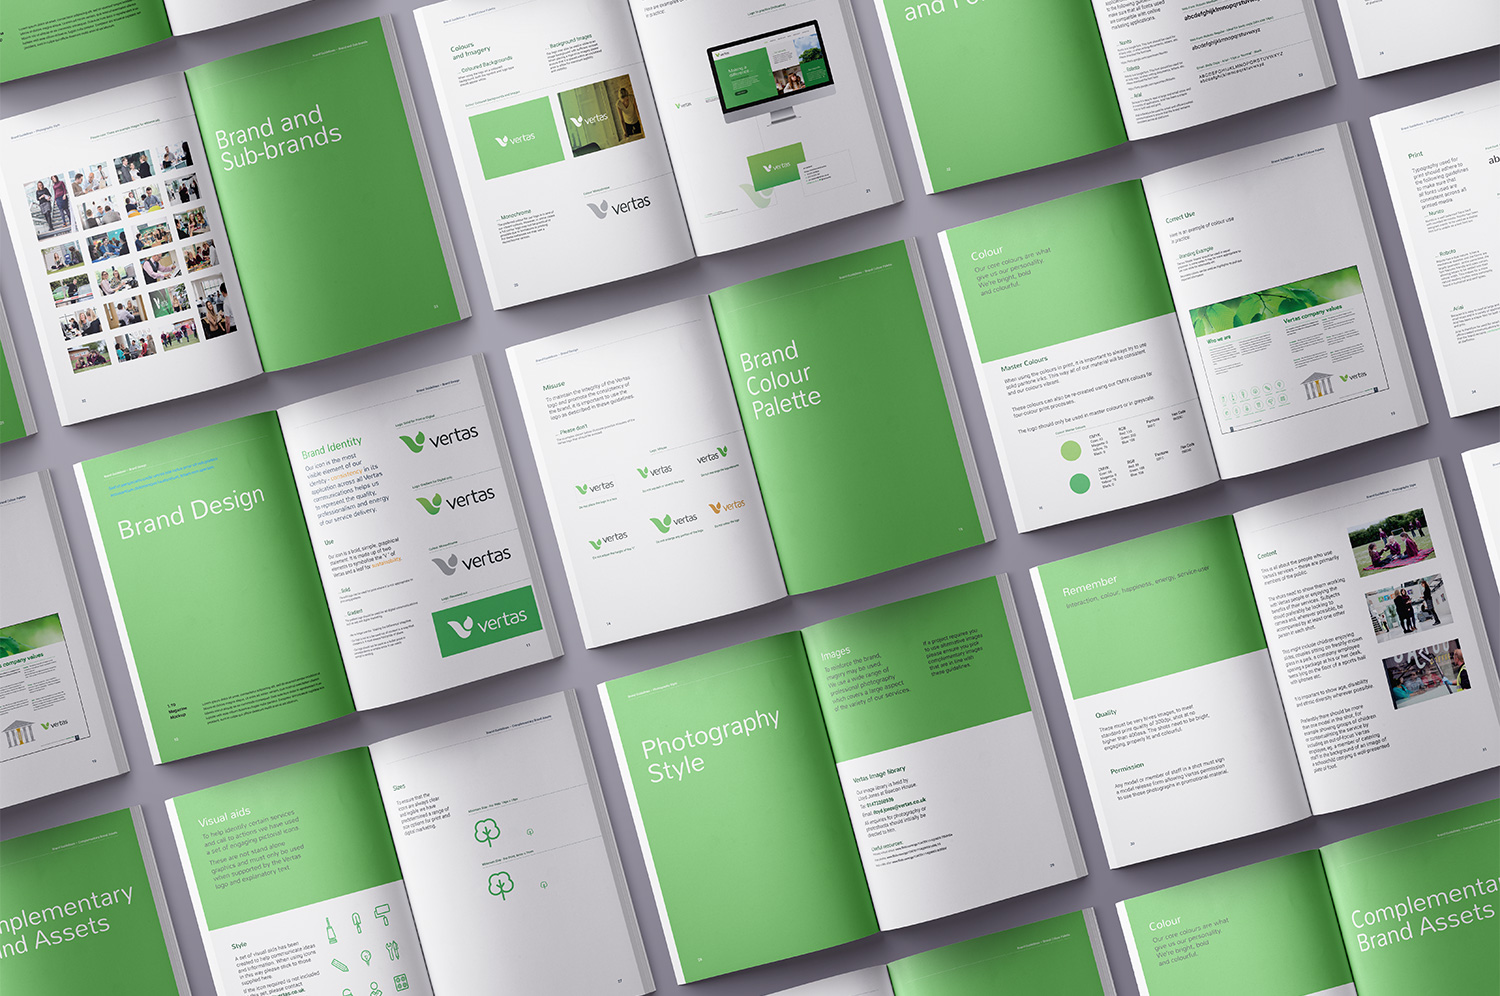 Vertas brand guidelines pages